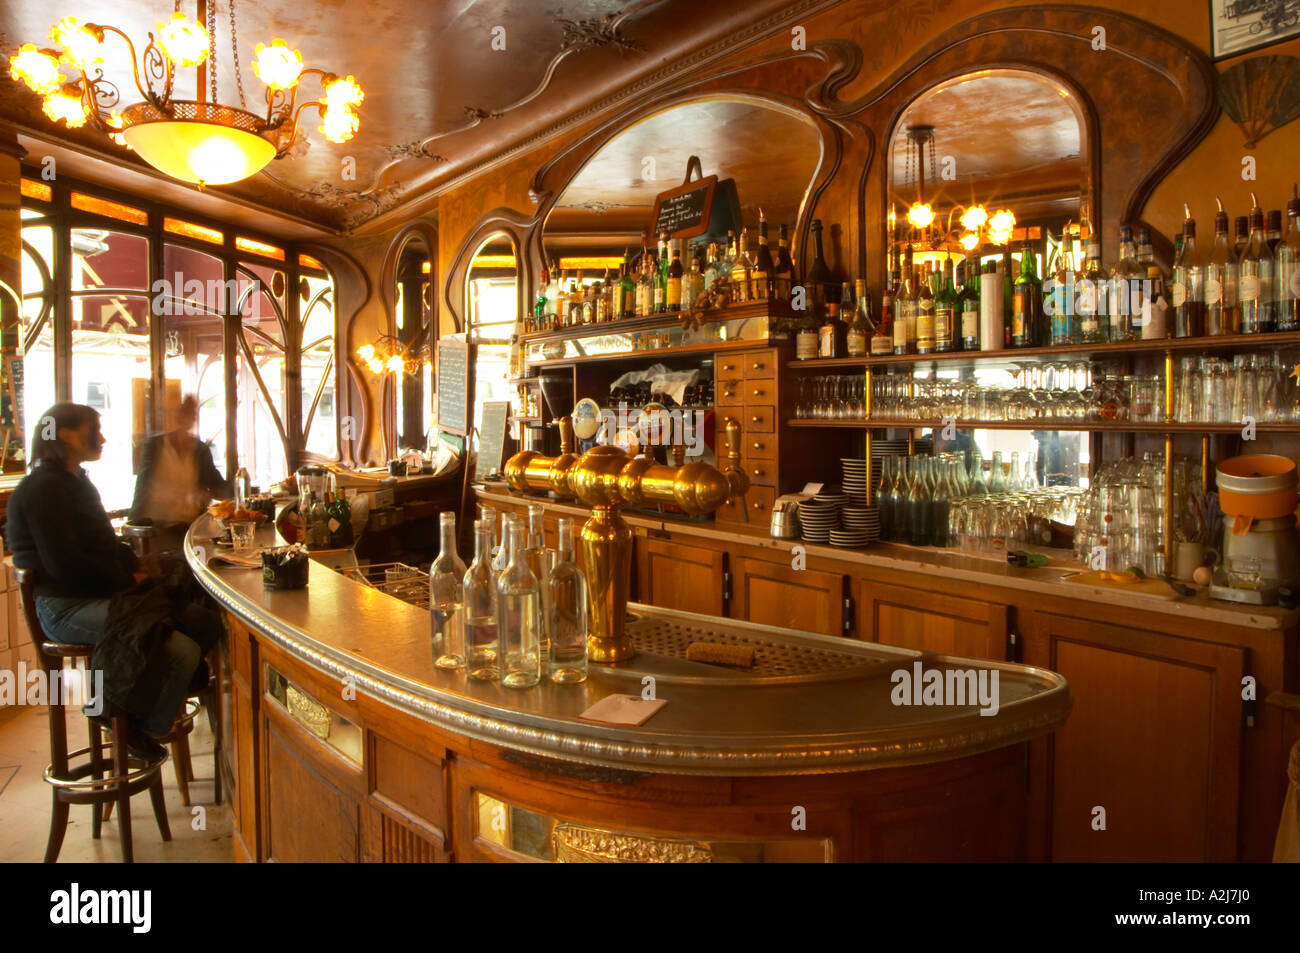 the curved bar zinc brass beer and water taps and water carafes stock photo 6018911 alamy. Black Bedroom Furniture Sets. Home Design Ideas